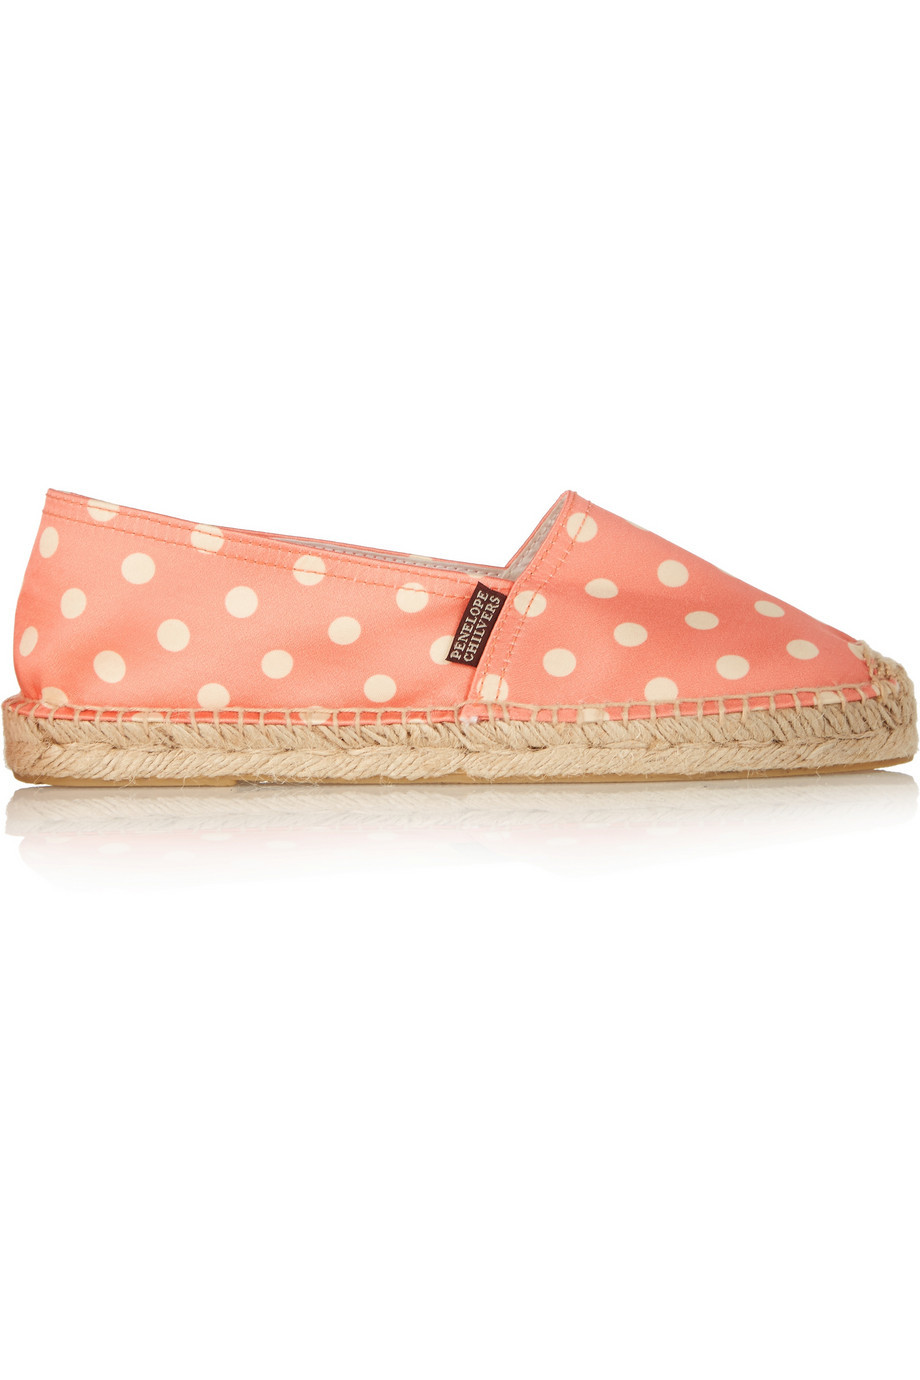 Polka Dot Satin Espadrilles Coral - predominant colour: ivory/cream; secondary colour: pink; occasions: casual, holiday; material: fabric; heel height: flat; toe: round toe; finish: plain; pattern: polka dot; style: espadrilles; season: a/w 2015